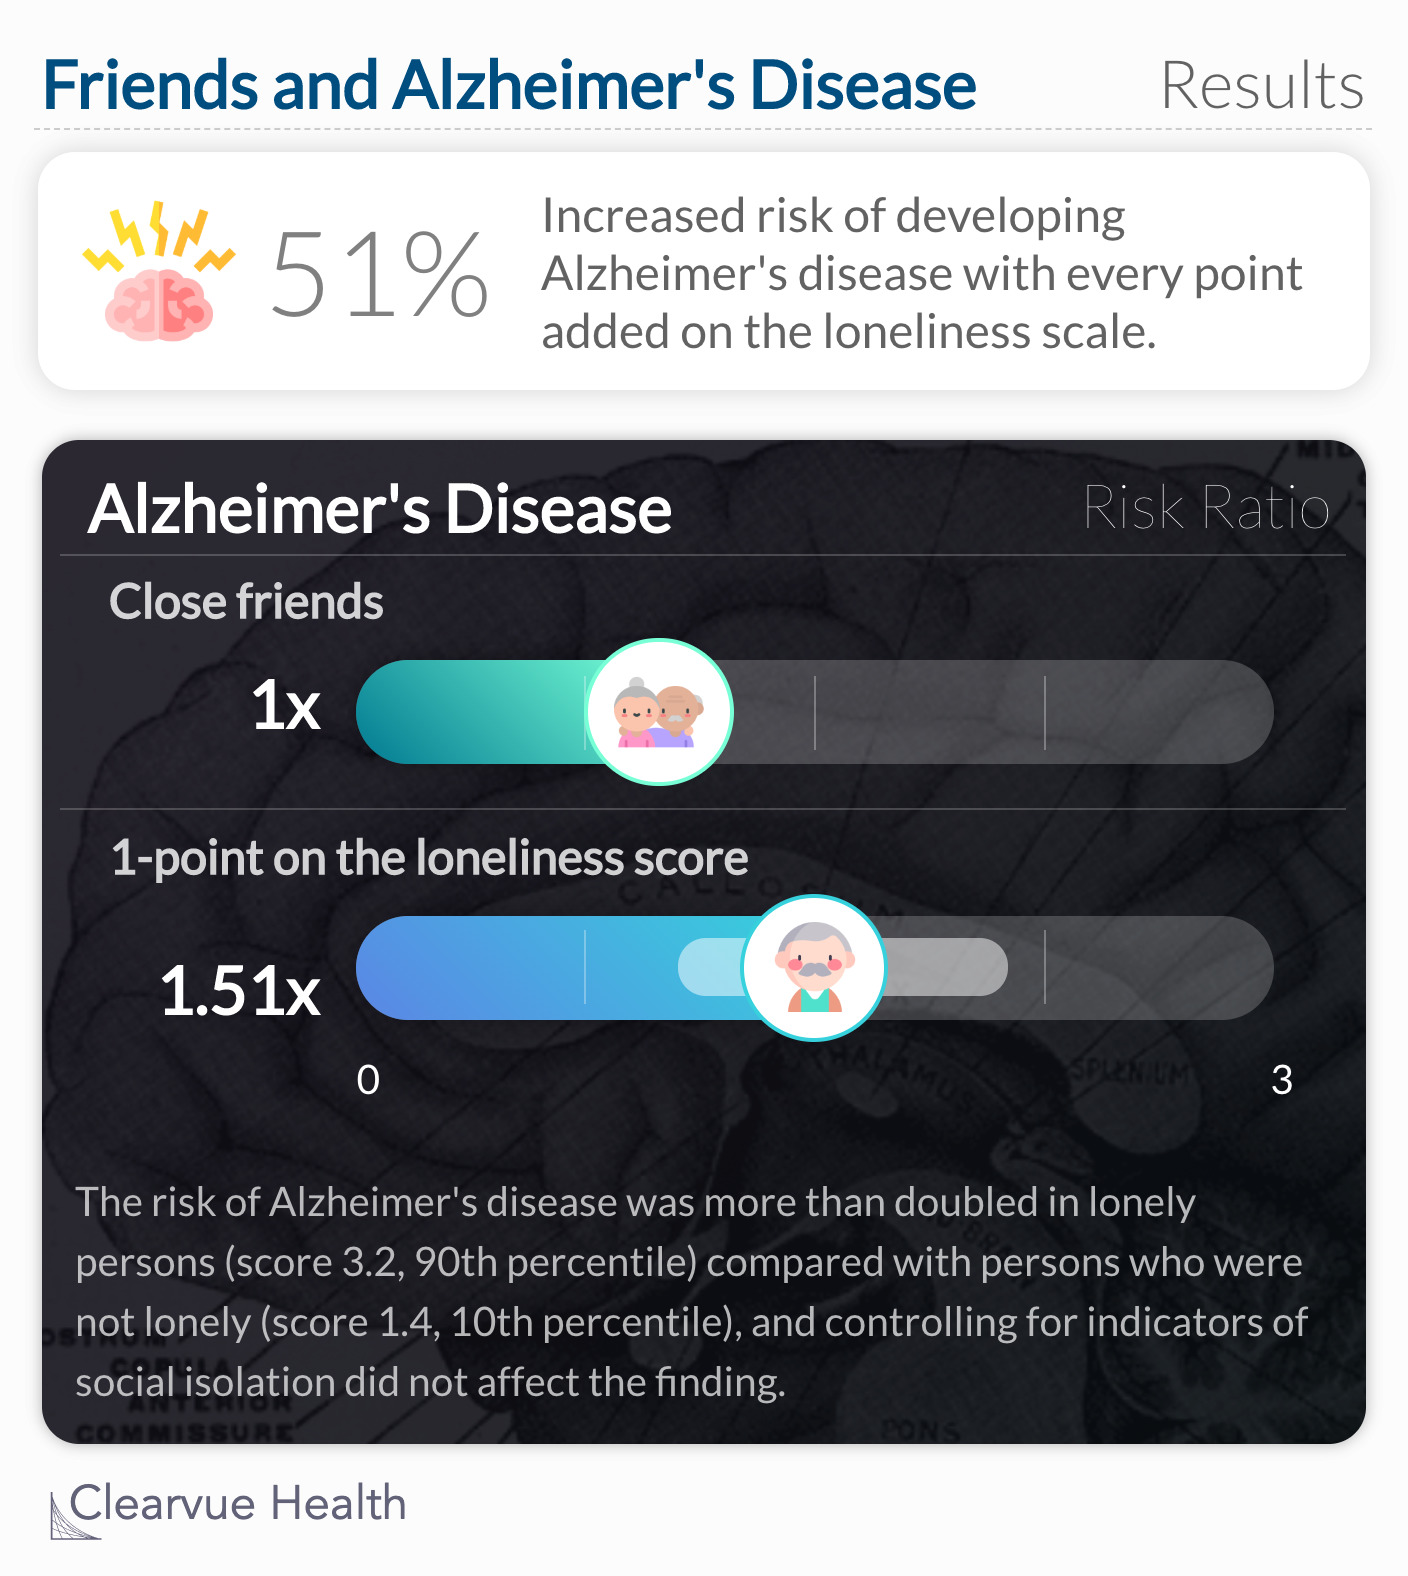 risk of clinical AD increased by approximately 51% for each point on the loneliness scale